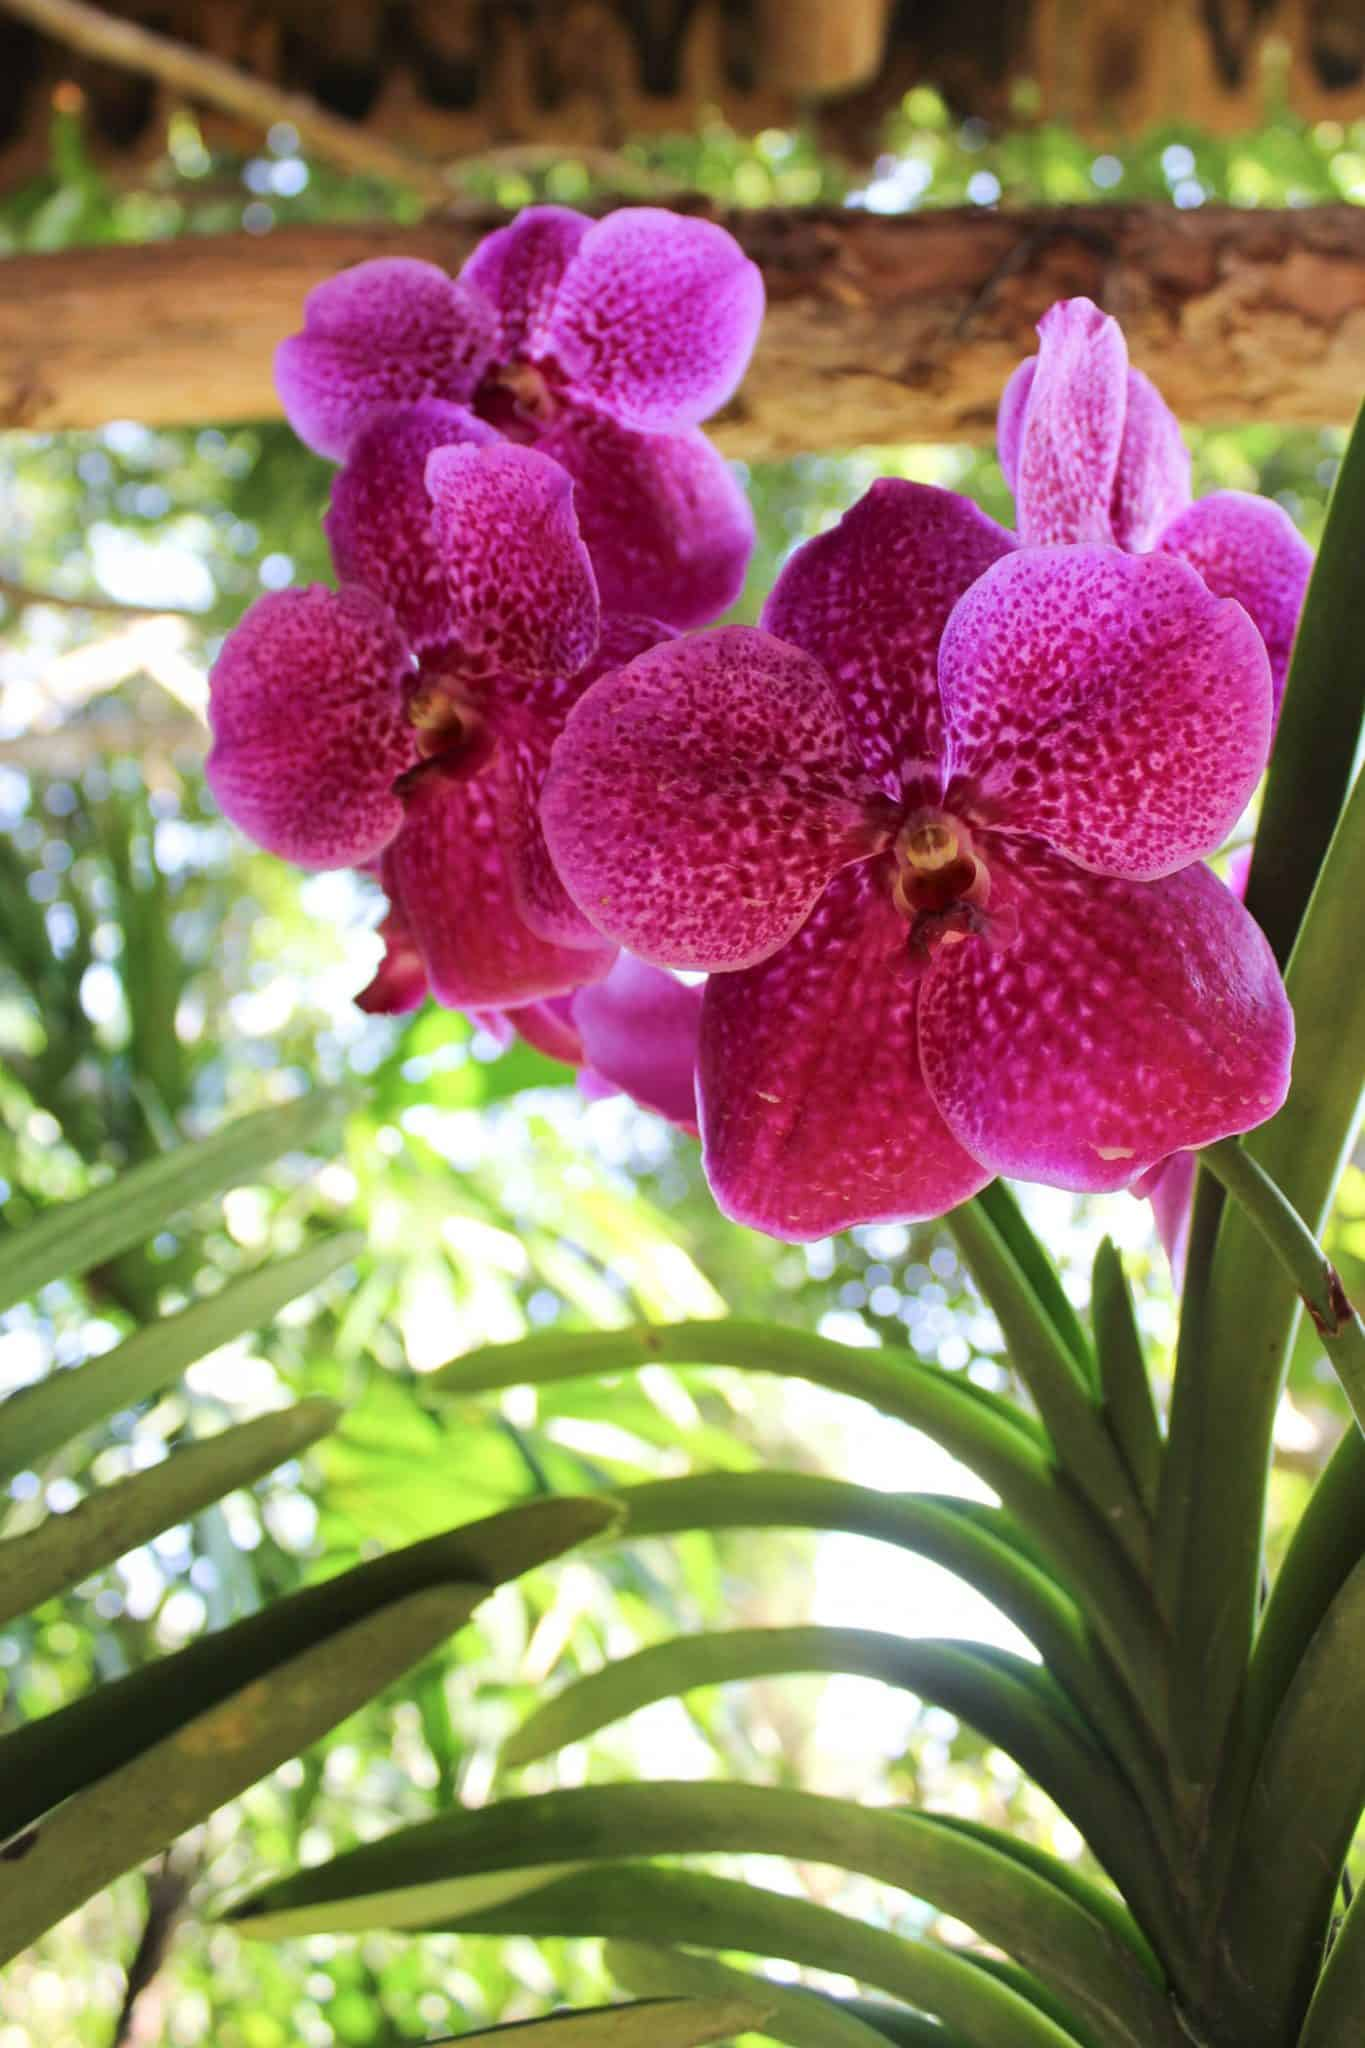 Chiang Mai Orchid Farm - Things to do in Thailand - A Thailand travel guide - My Style Vita @mystylevita